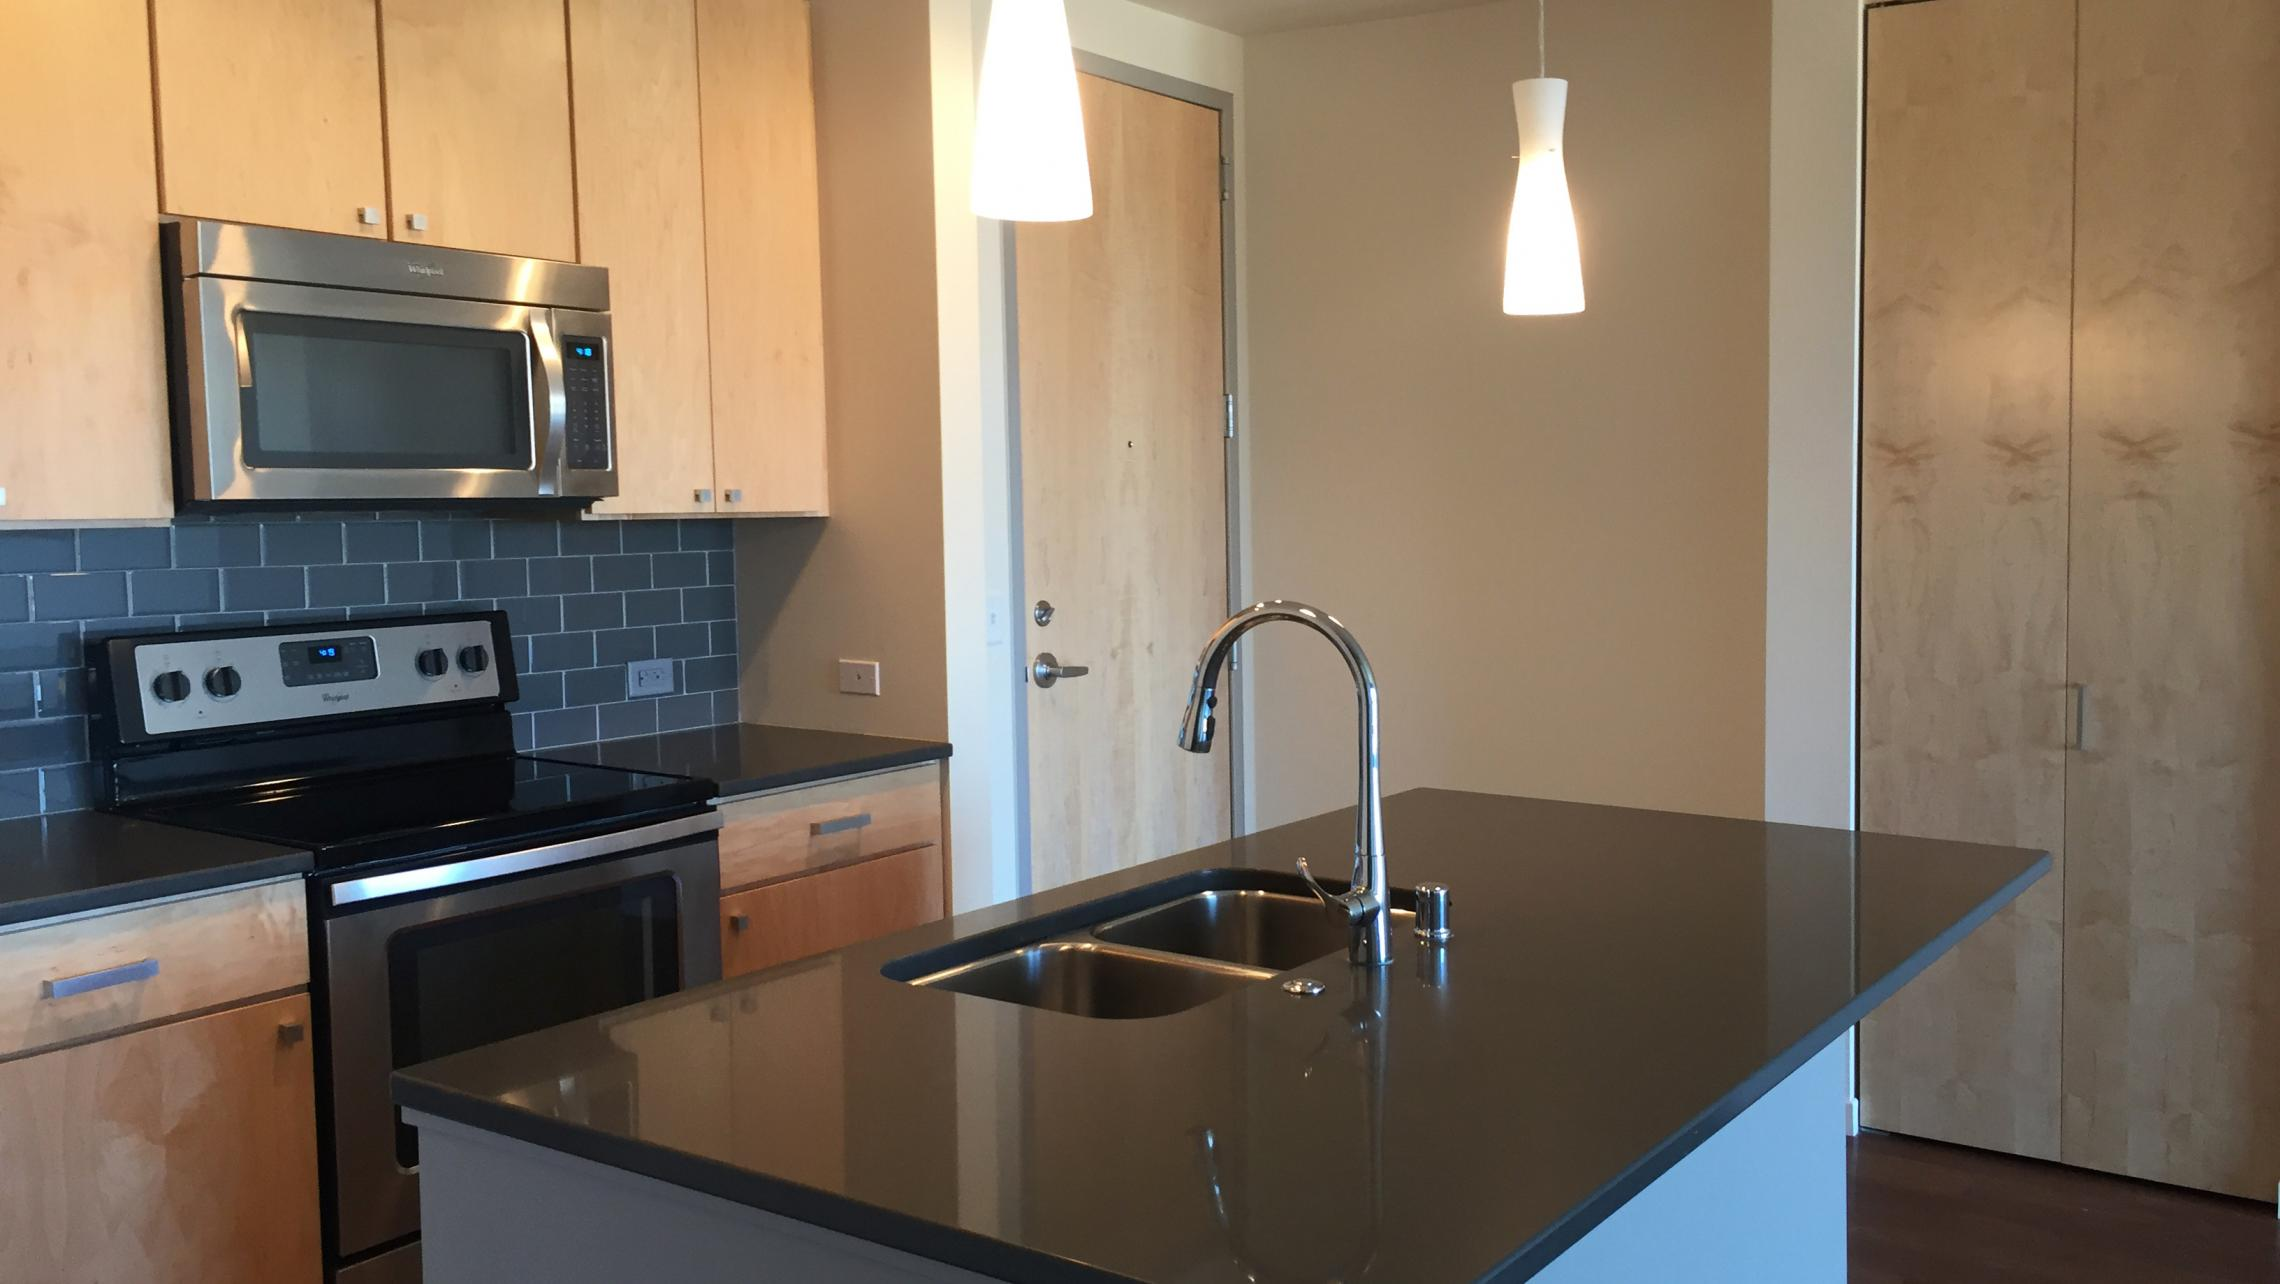 ULI Nine Line Apartment 216 - Kitchen with Stainless Steel Appliances